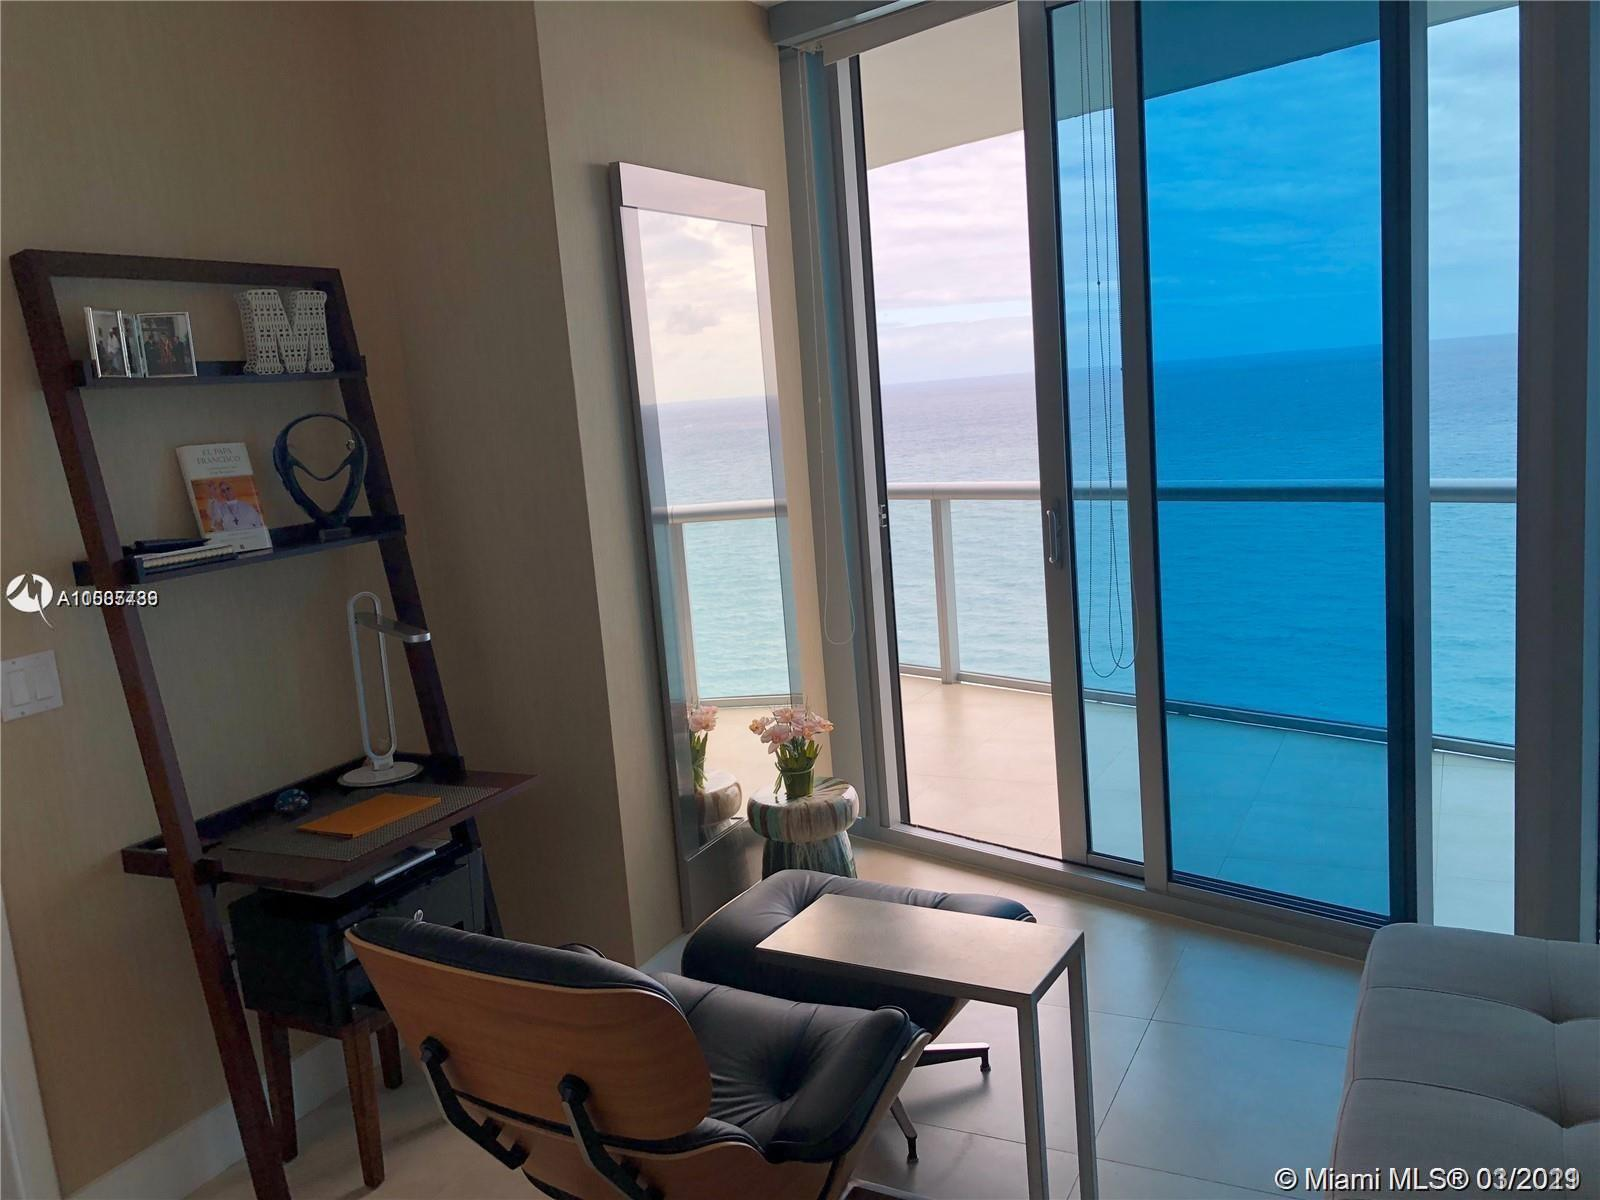 GREAT  3beds/3baths DEAL in prestigious and luxurious oceanfront JADE BEACH Condominium in Sunny Isles Beach! Enjoy breathtaking, unobstructed, direct ocean views from this spectacular residence in the sky! Offered unfurnished with amazing finishes such as: european appliances, quartz kitchen counter top, cabinetry, beautiful marble floors throughout, closets and window treatments. 3 bedroom as per owner.